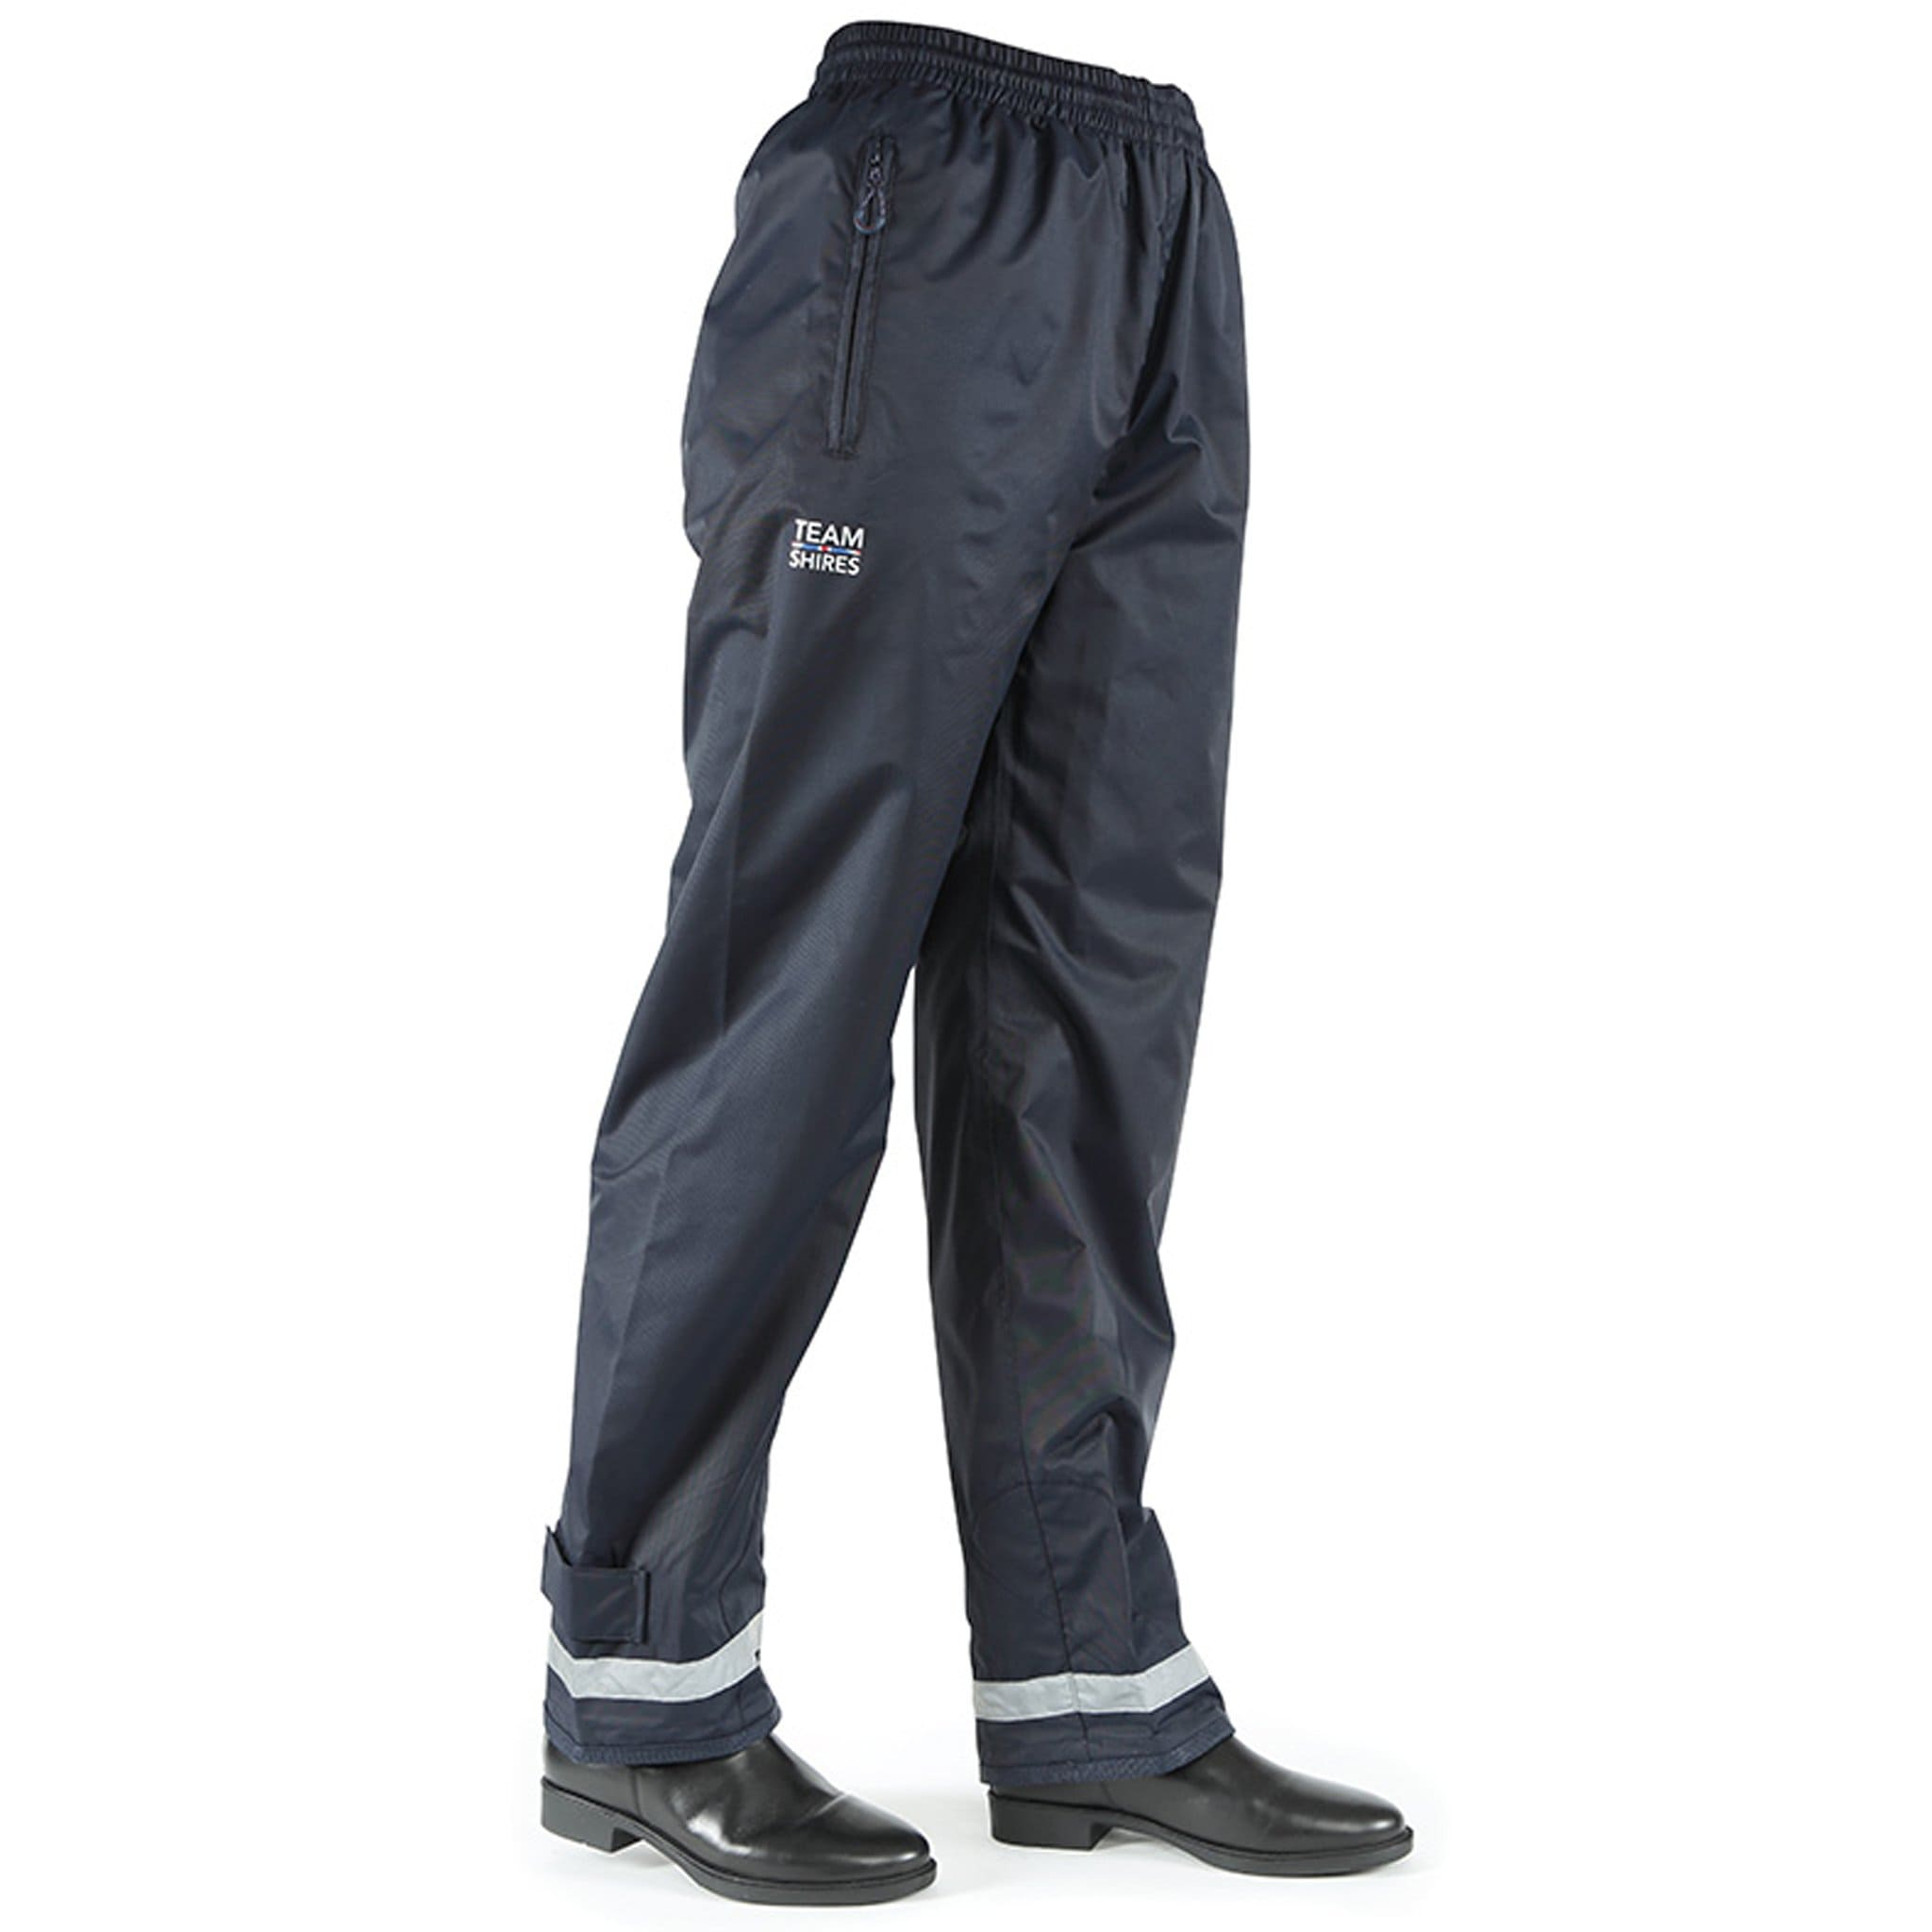 Shires Team Winter Waterproof Over Trousers 9865